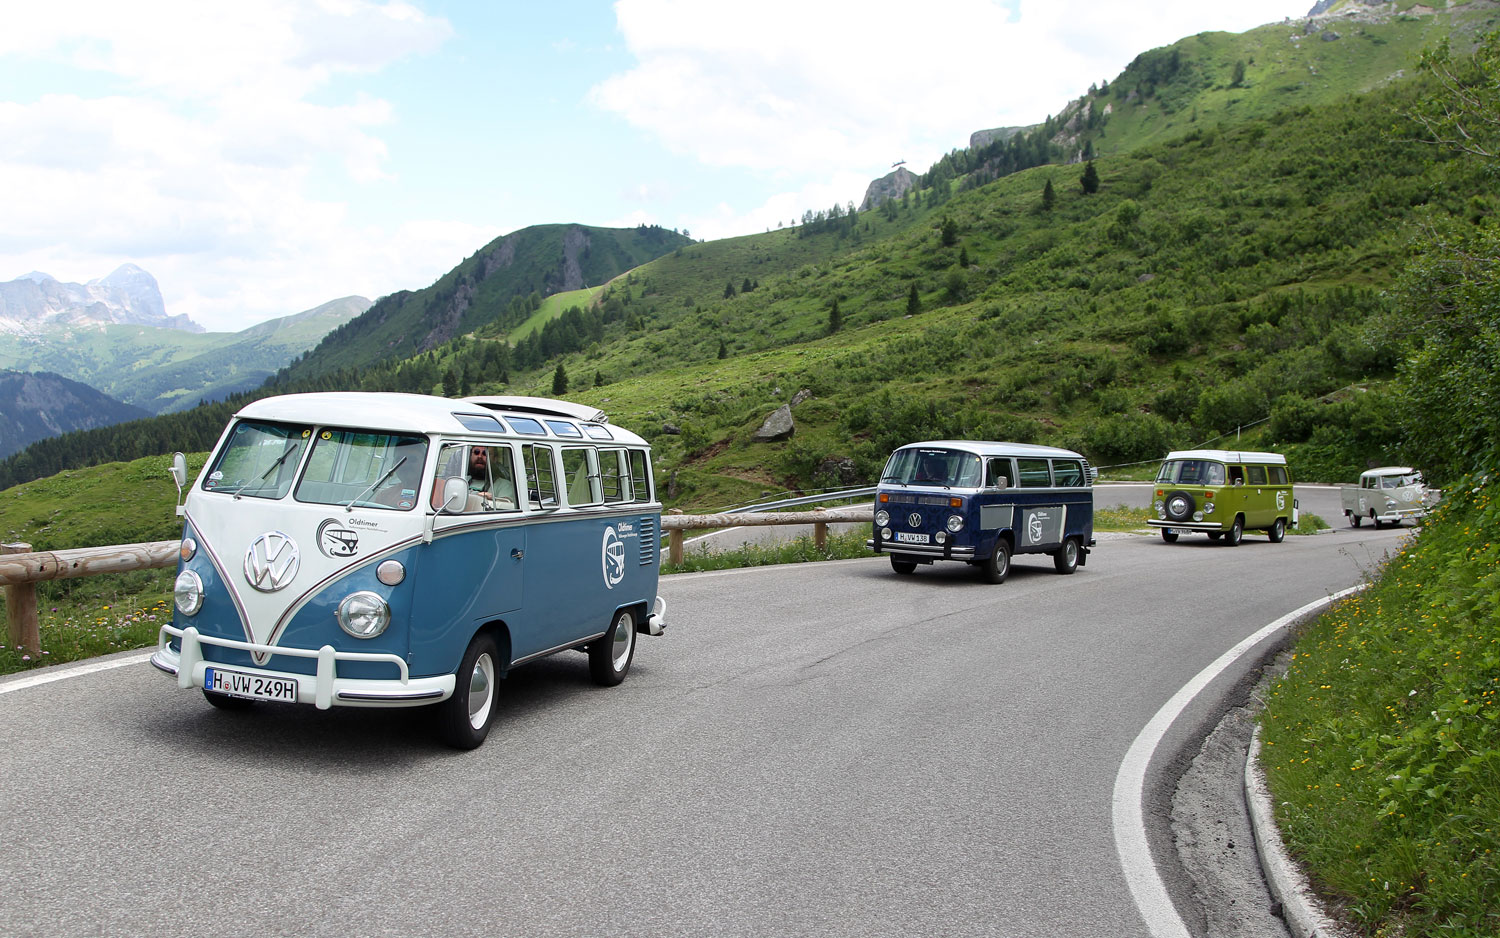 Vw Microbus For Sale >> After 60-Plus Years, Volkswagen Microbus Production Will ...